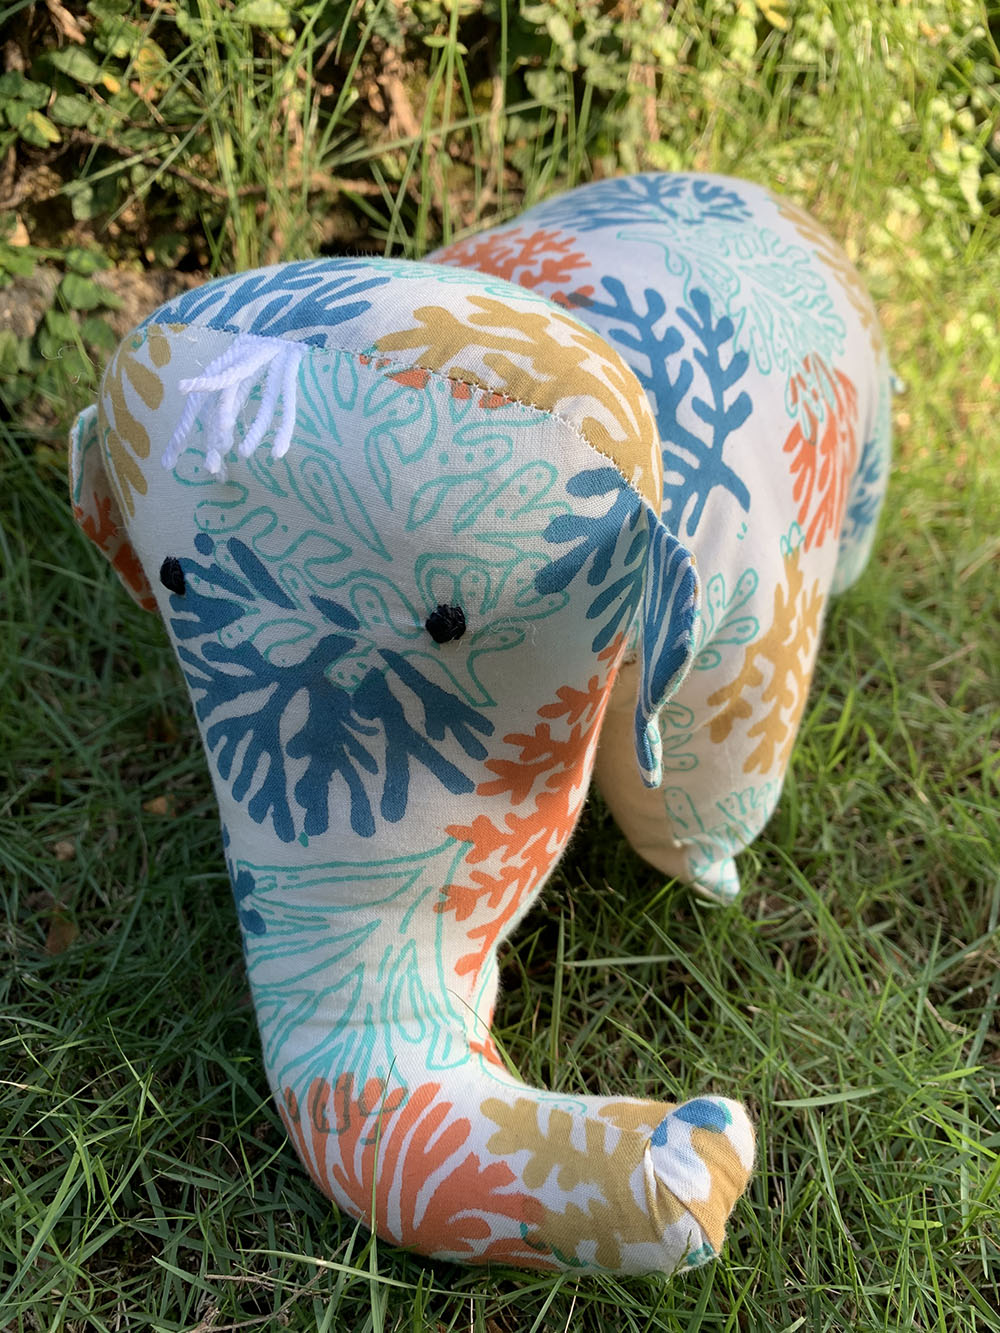 Coral Reef - Elephant Pillow Toy